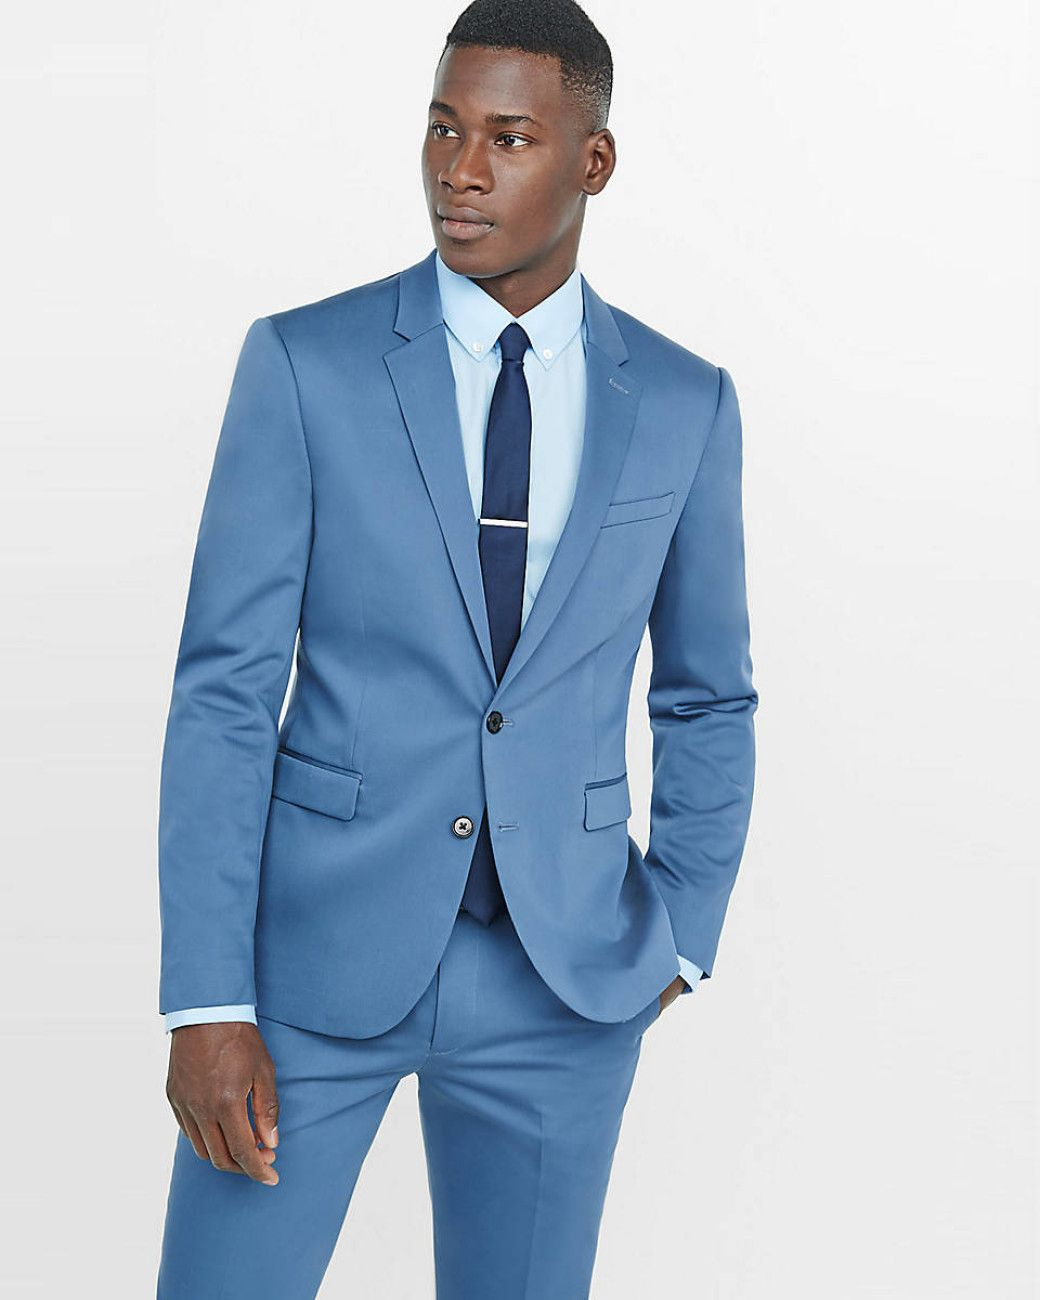 Men's Skinny Innovator Cotton Sateen Blue Suit Jacket | Blue suit ...